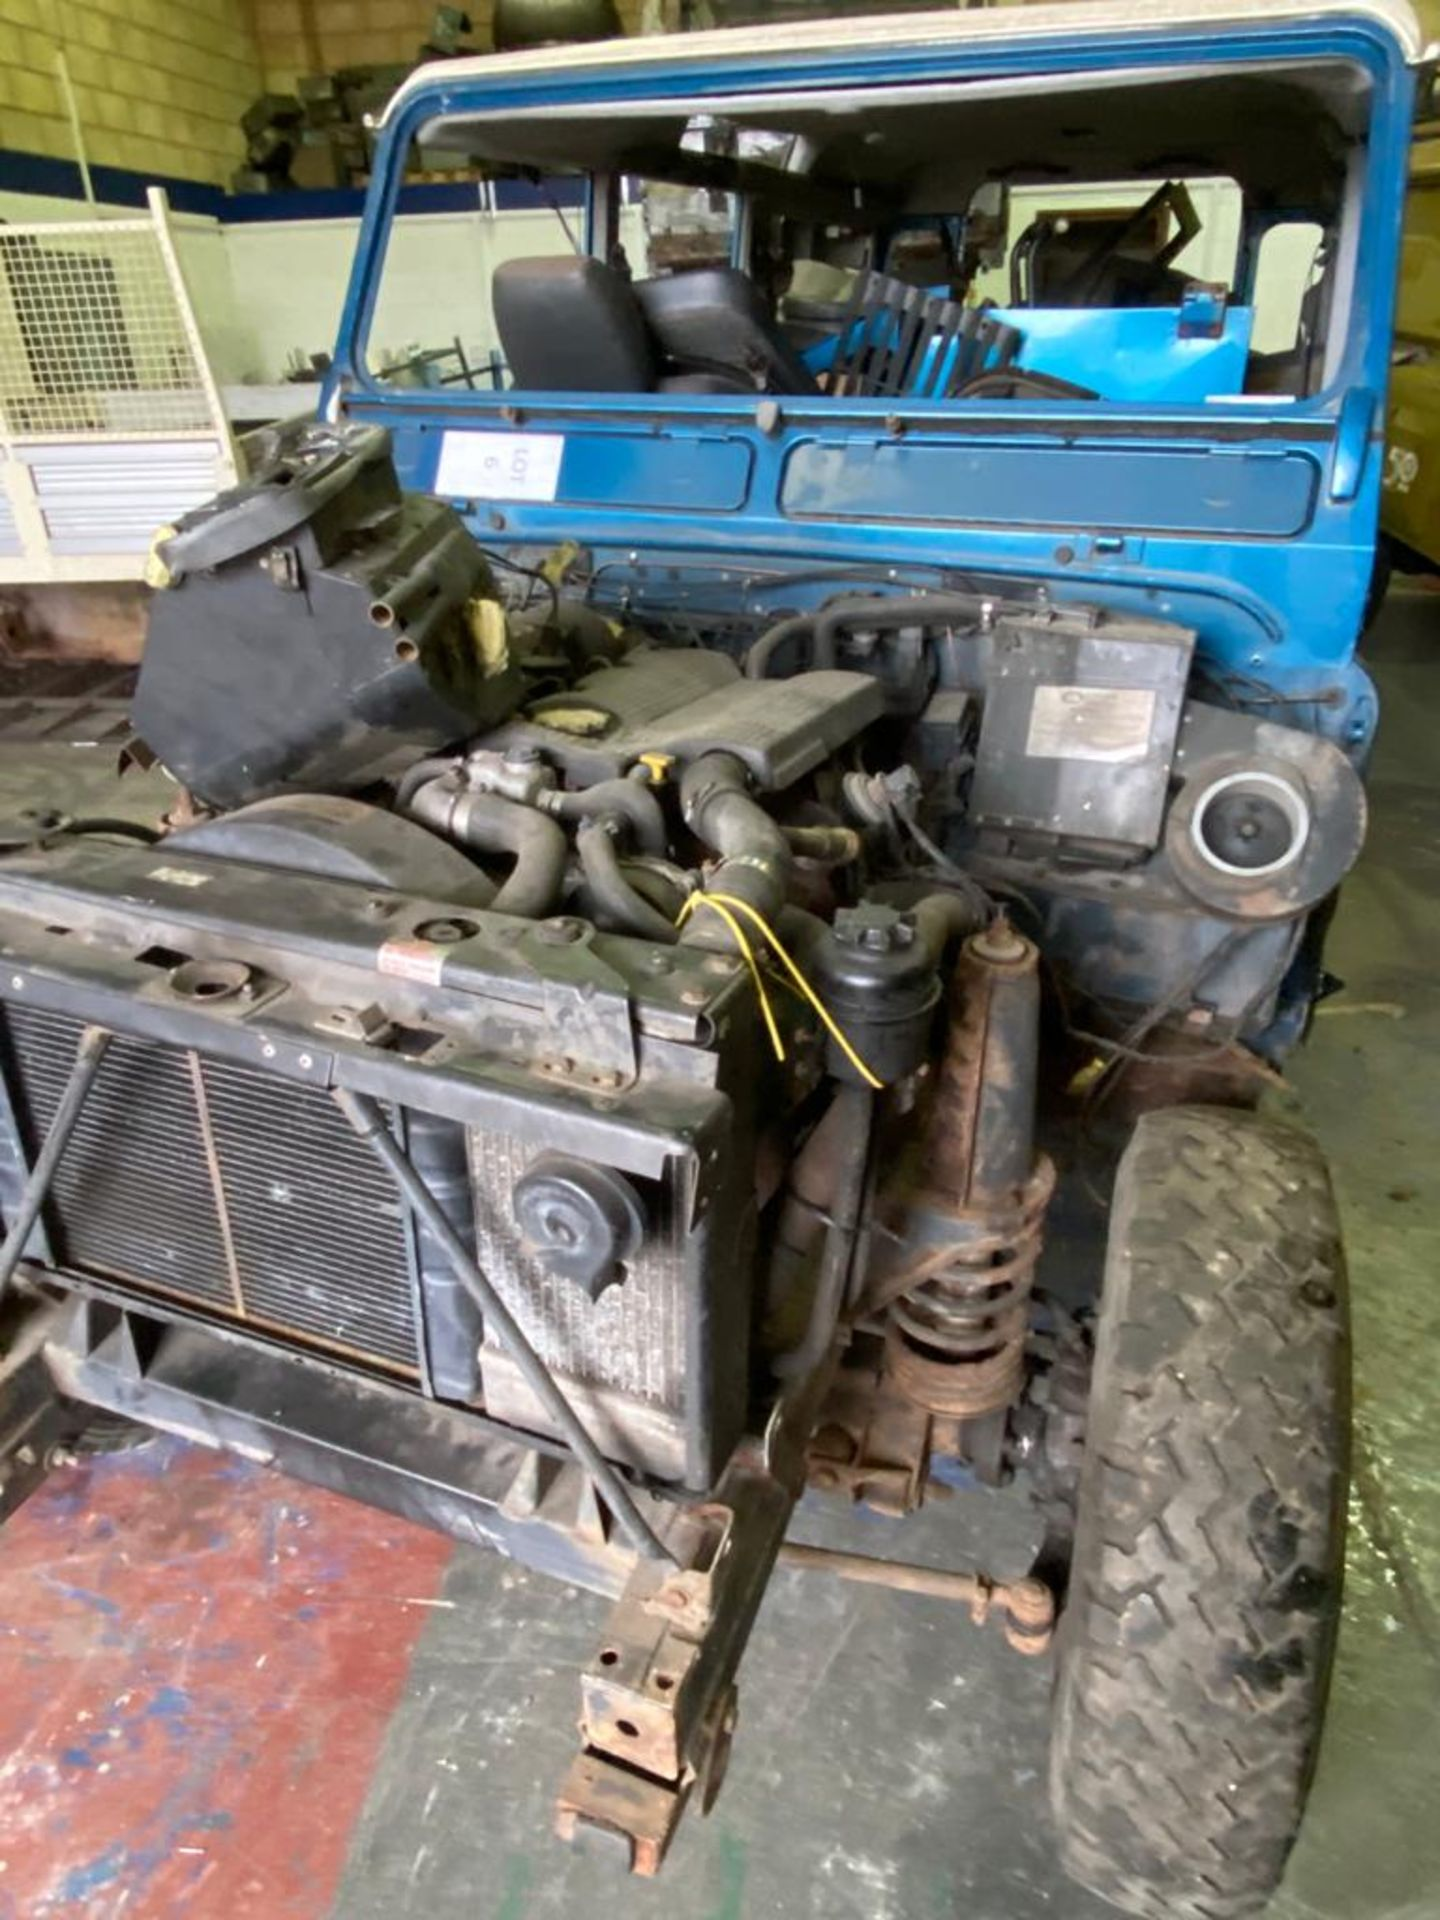 Land Rover 110 County, 300 TDI Engine Appears Mostly Complete - No Bumper, Bonnet, Glass etc As - Image 25 of 26